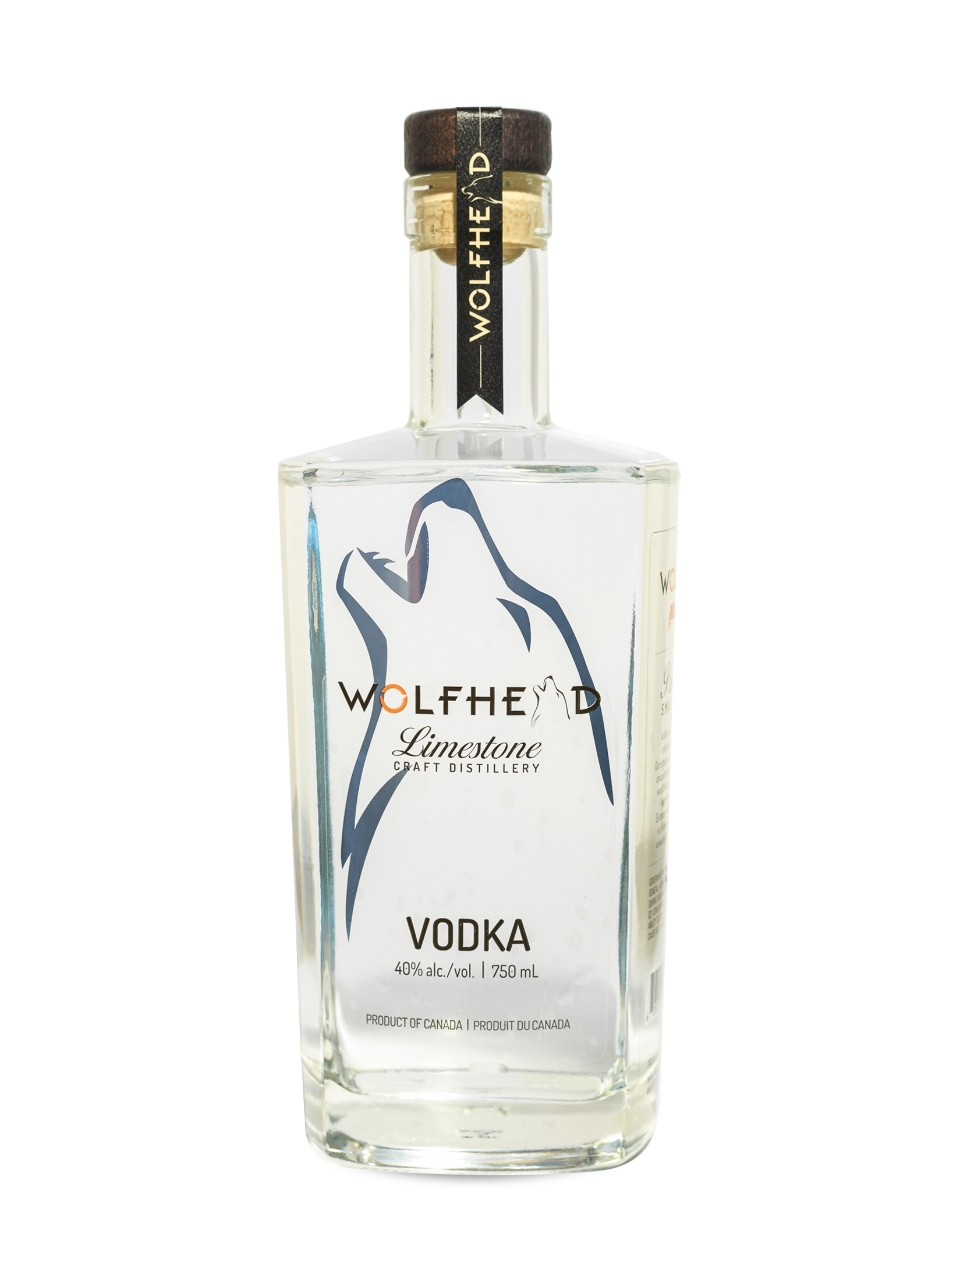 Wolfhead Distillery Vodka from LCBO